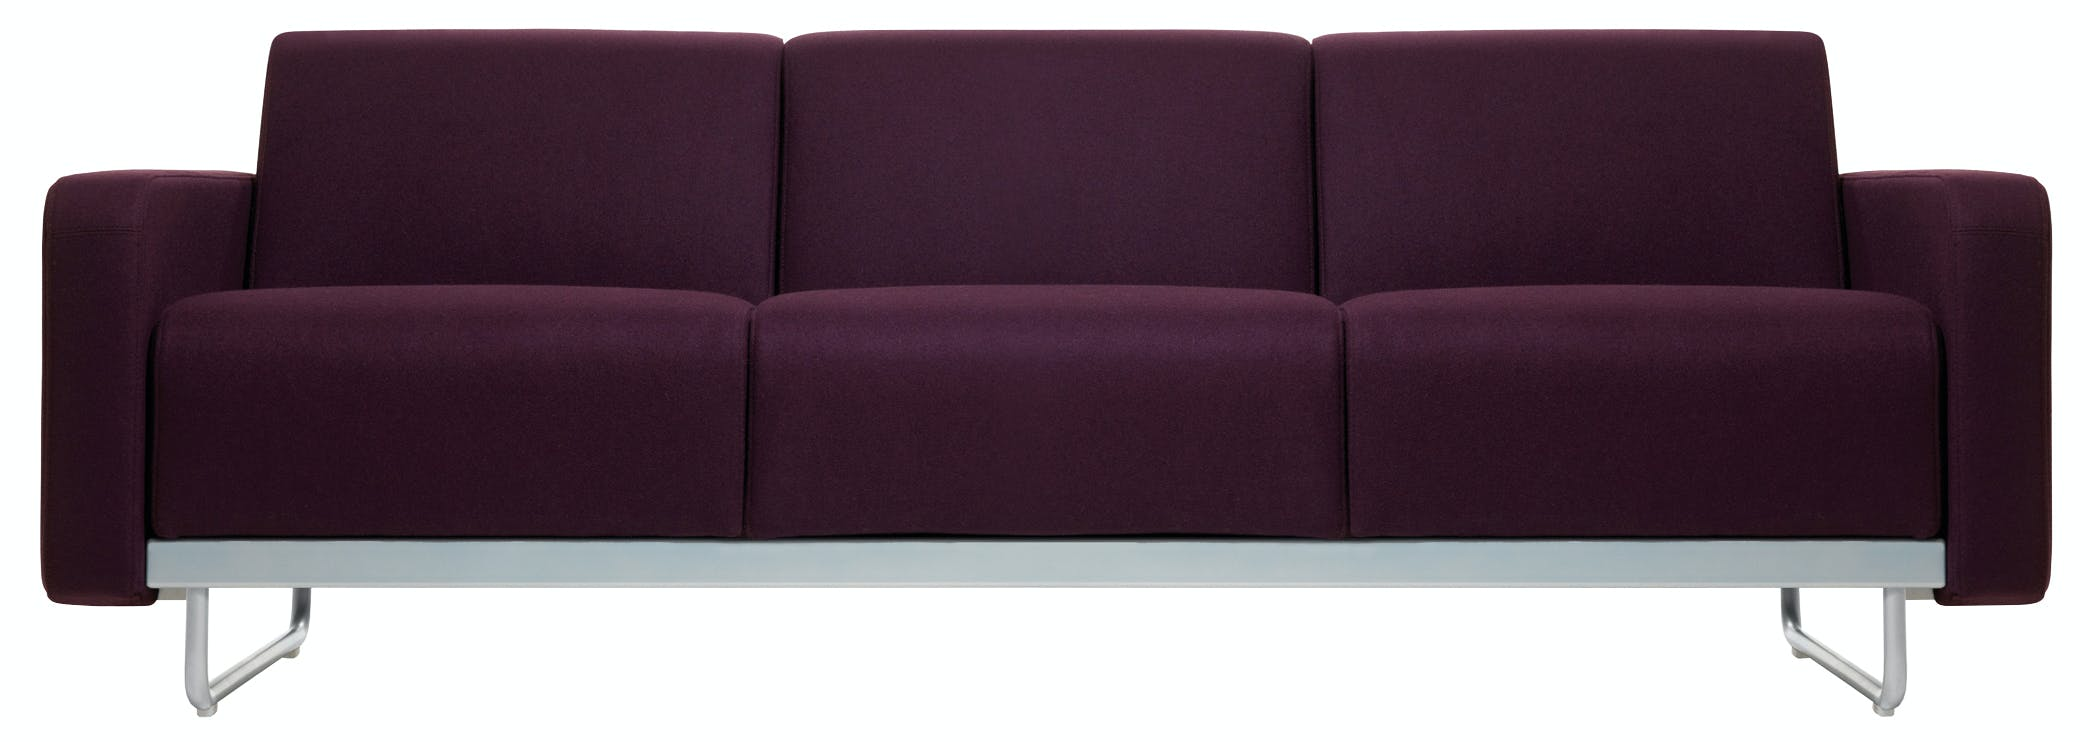 Artifort Purple Reflex Sofa